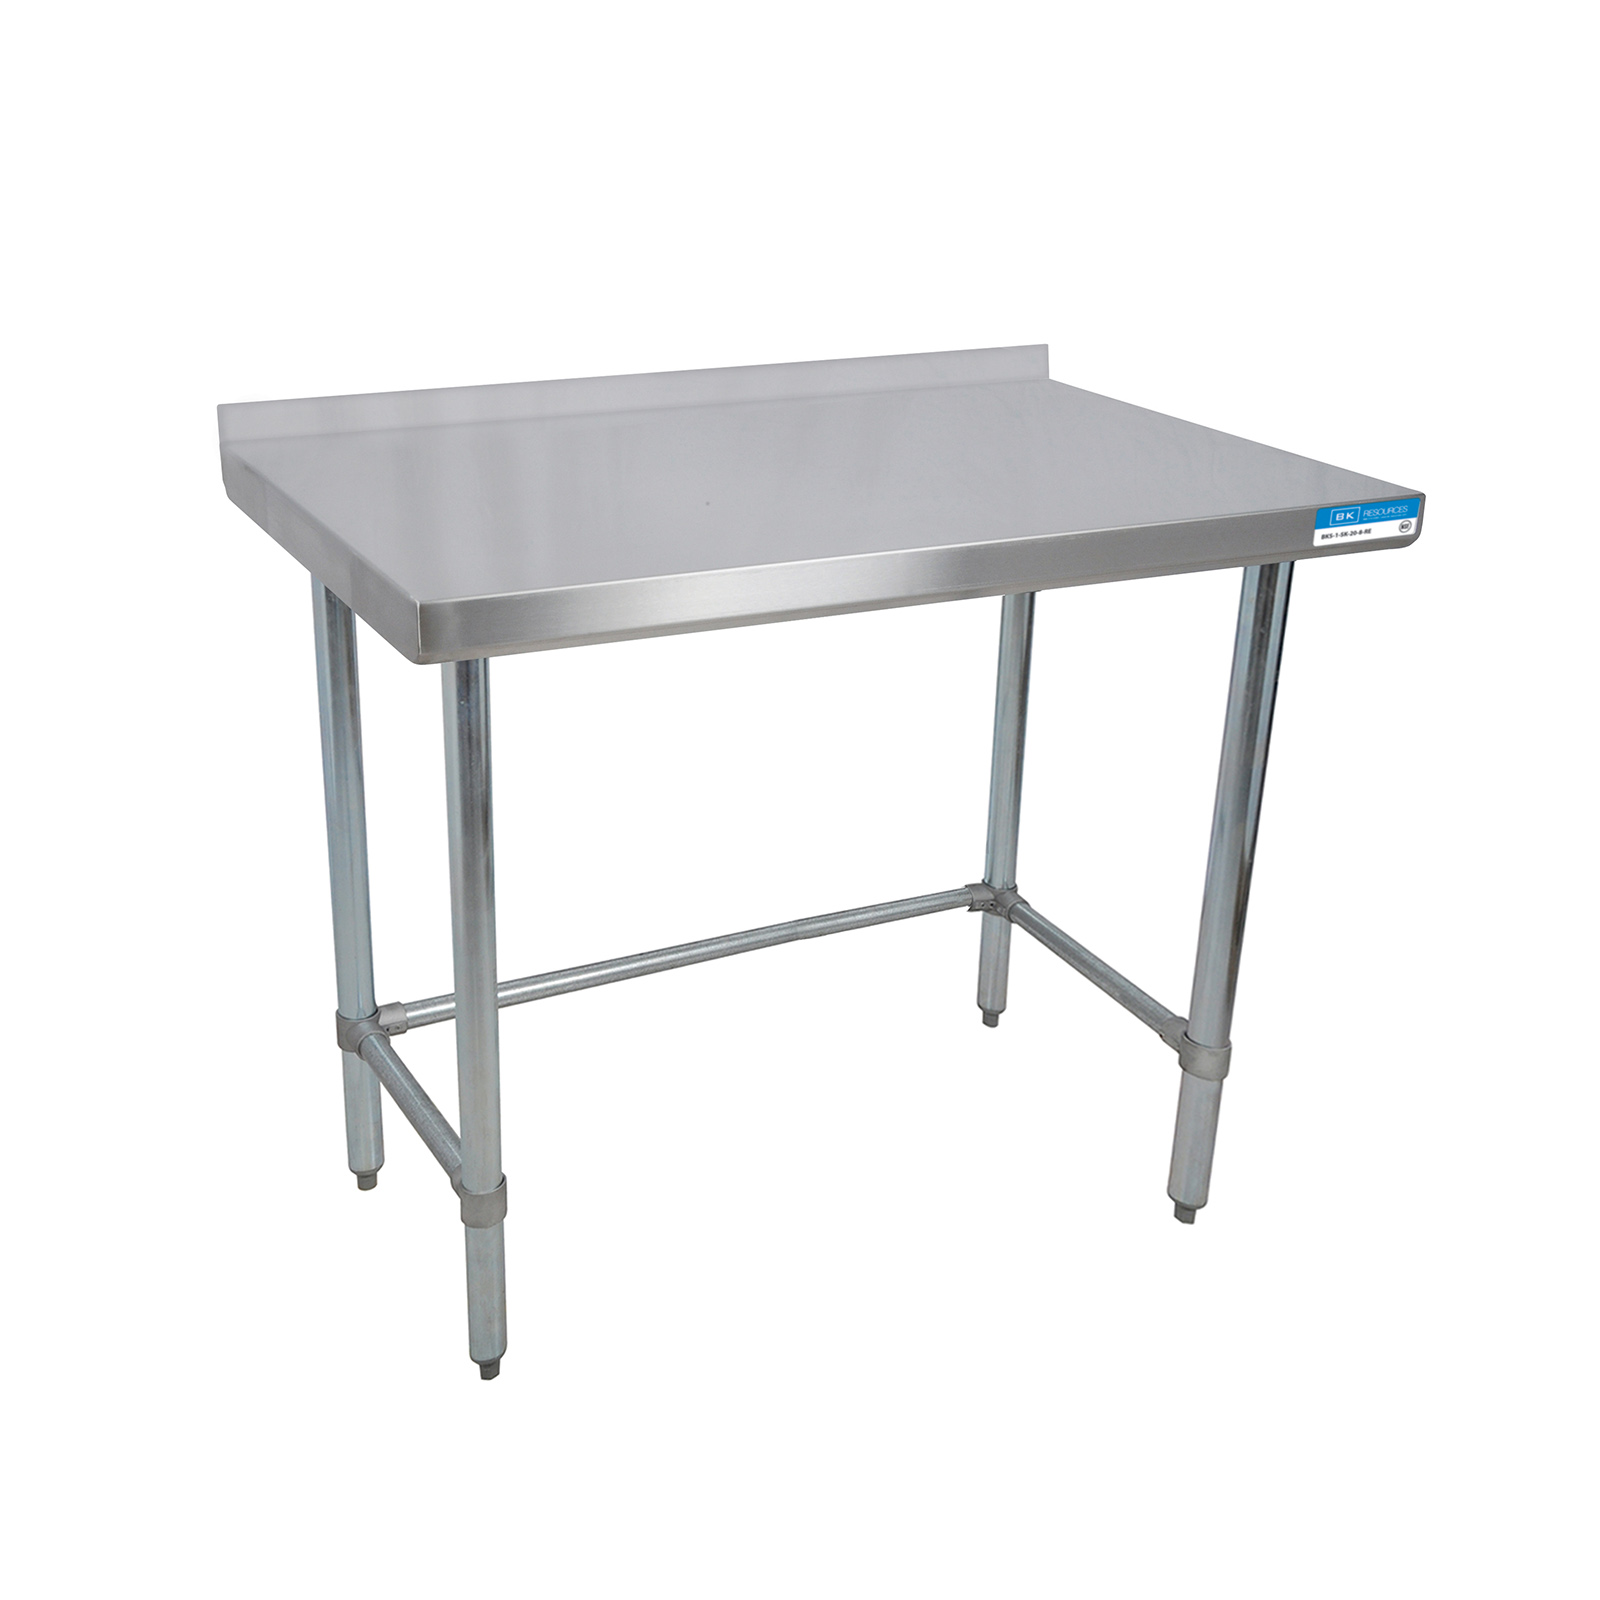 BK Resources VTTROB-6030 work table,  54